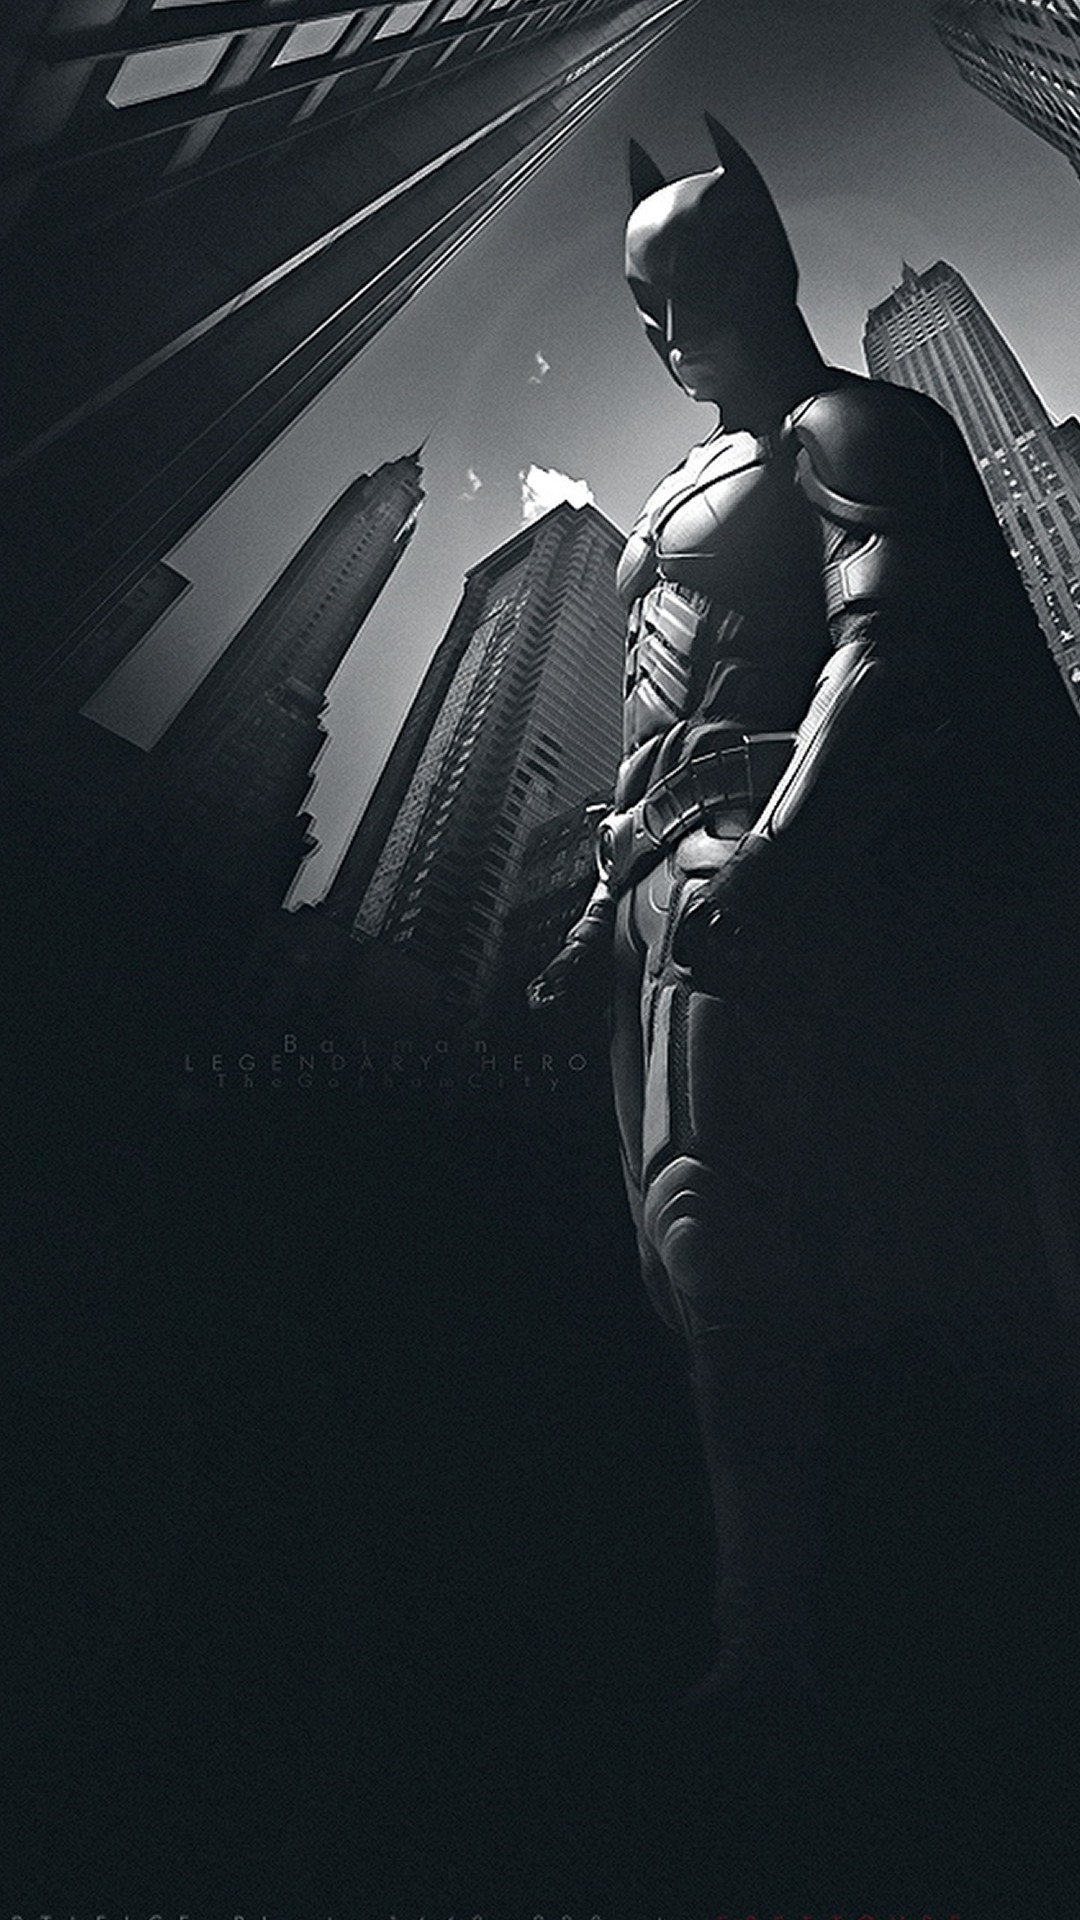 batman wallpaper iphone batman iphone wallpaper iphone wallpapers 9605